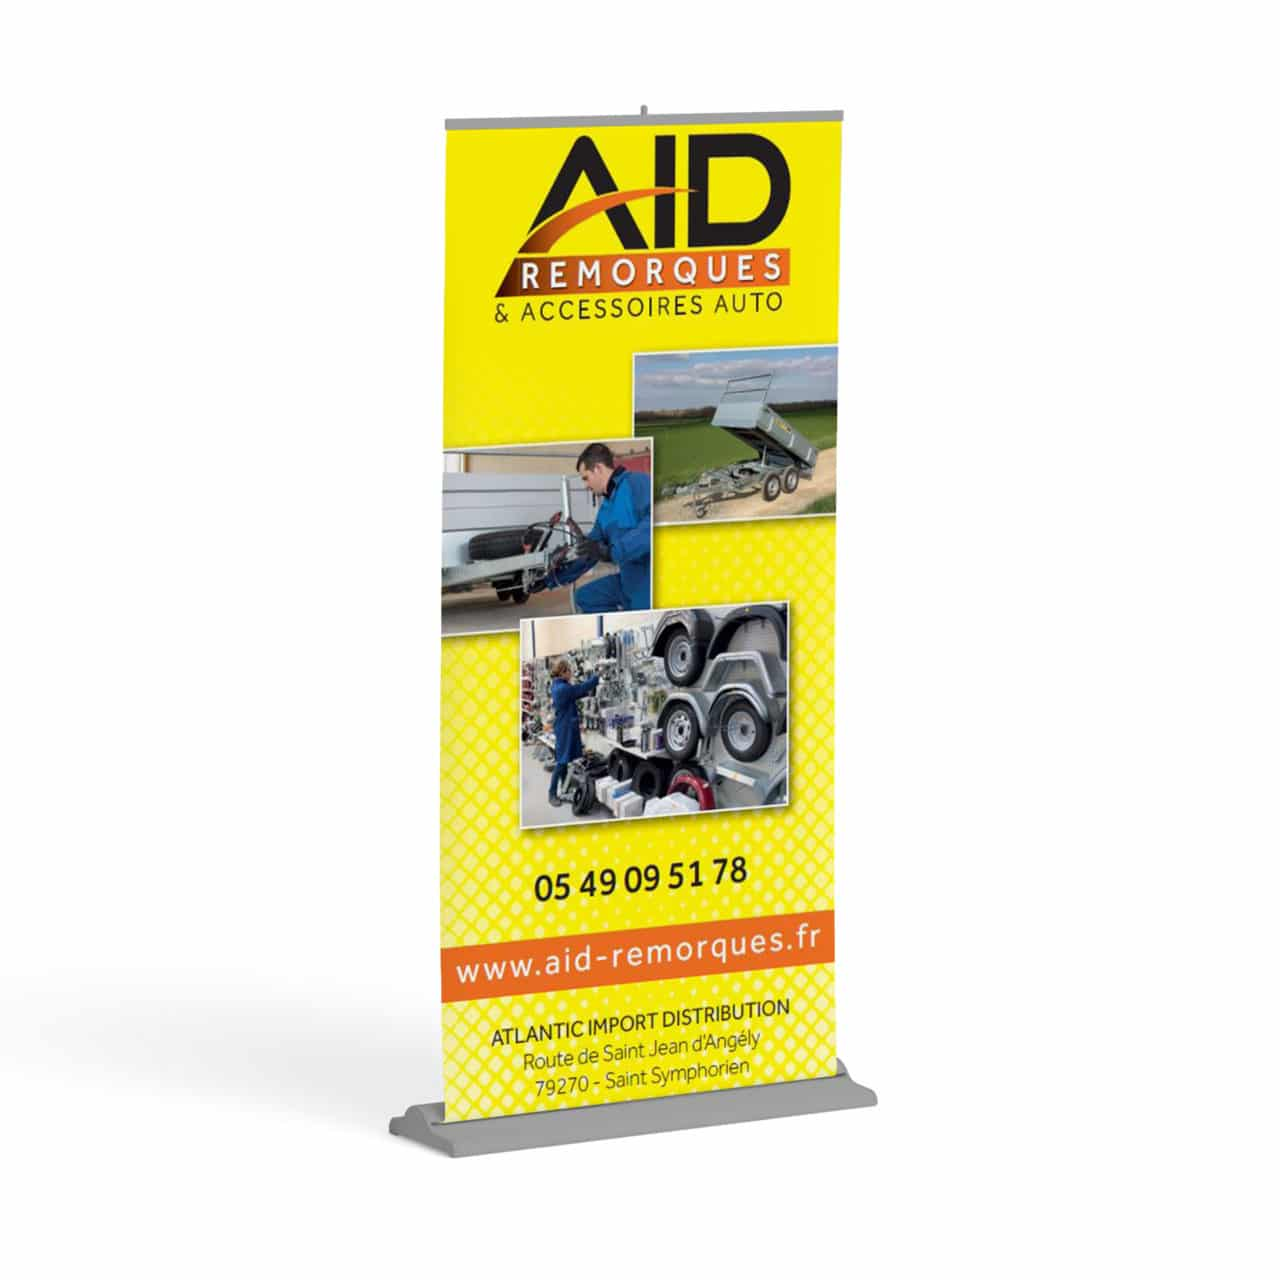 Roll-up AID Remorques